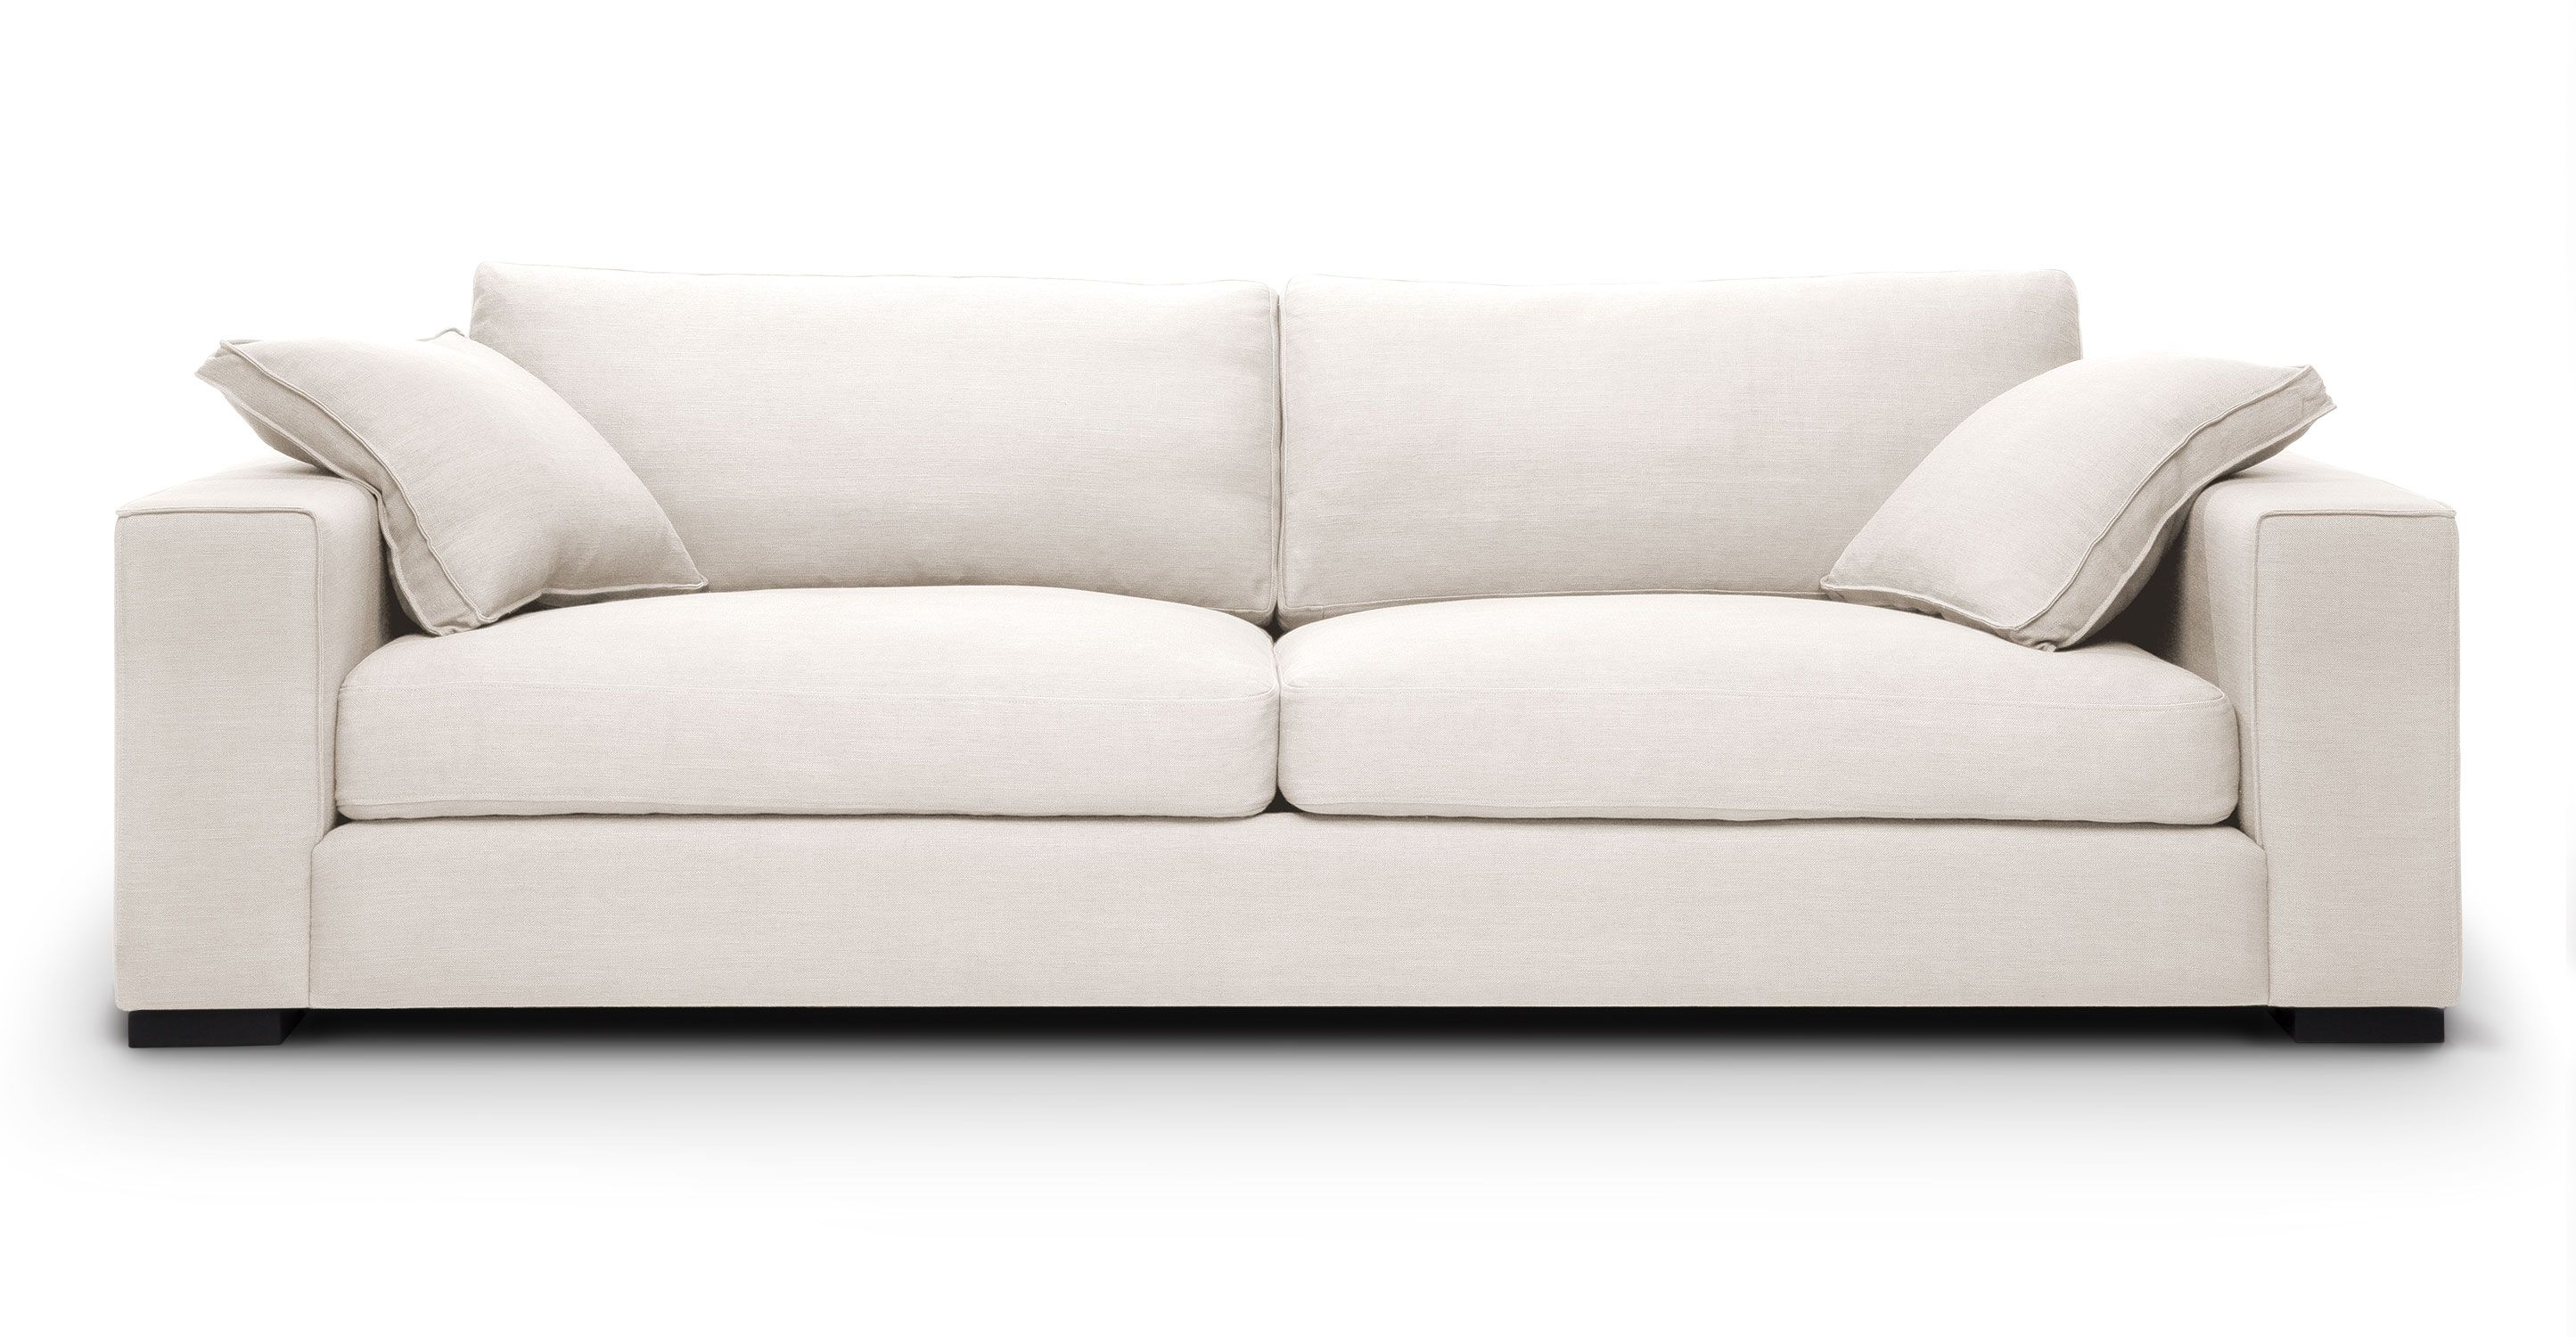 Sitka Quartz White Sofa | Patty A Living | White sofas, Long sofa, Sofa